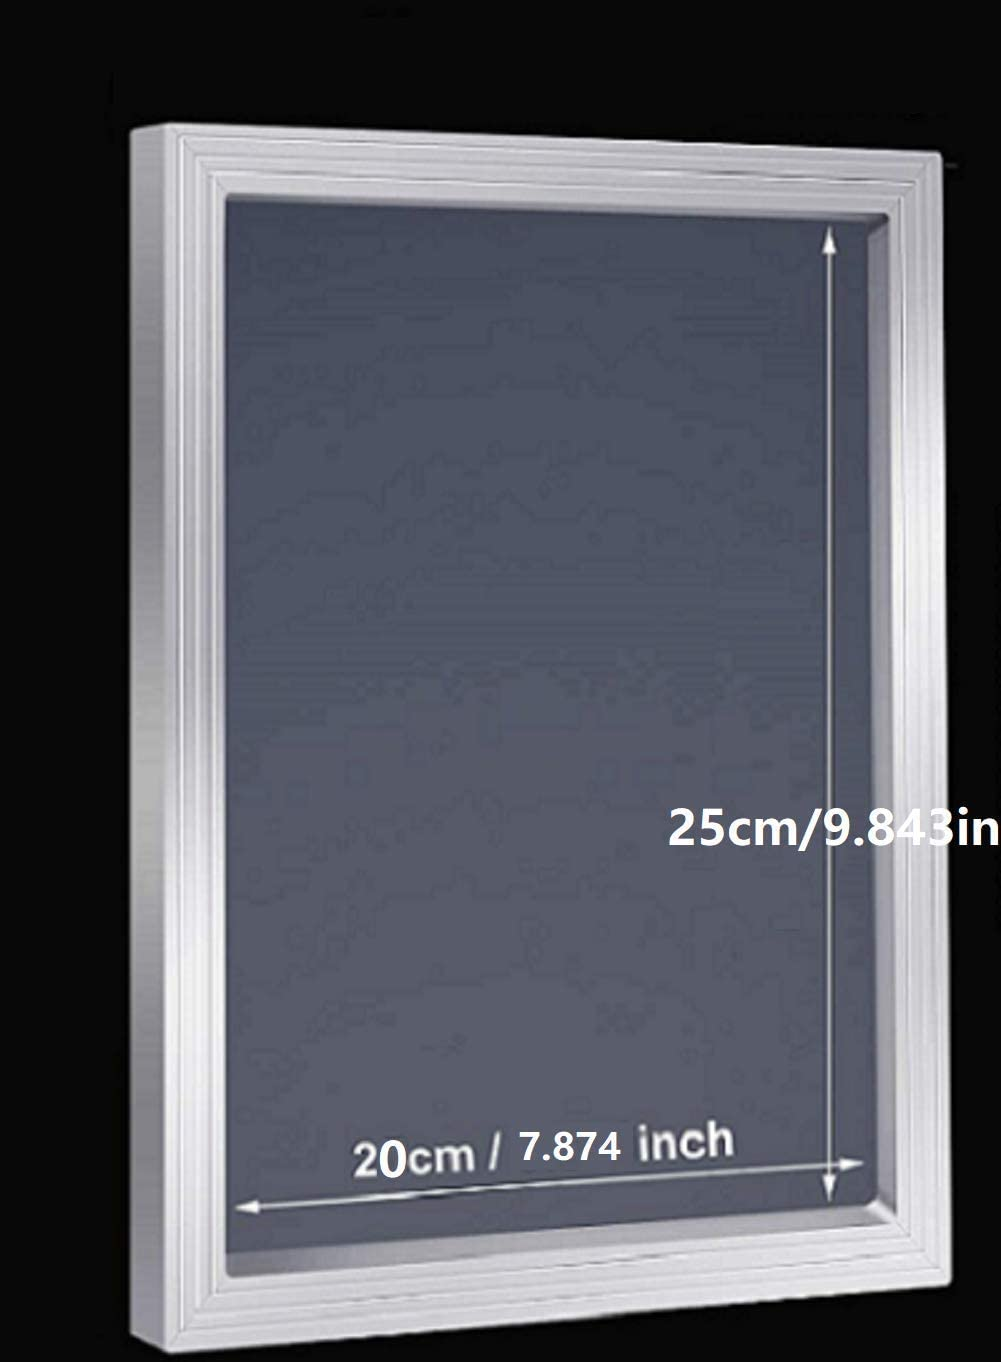 20x25cm 7.87 x 9.84inch Aluminium Screen Printing Frames with 43T//110 White Mesh for Screen Printing